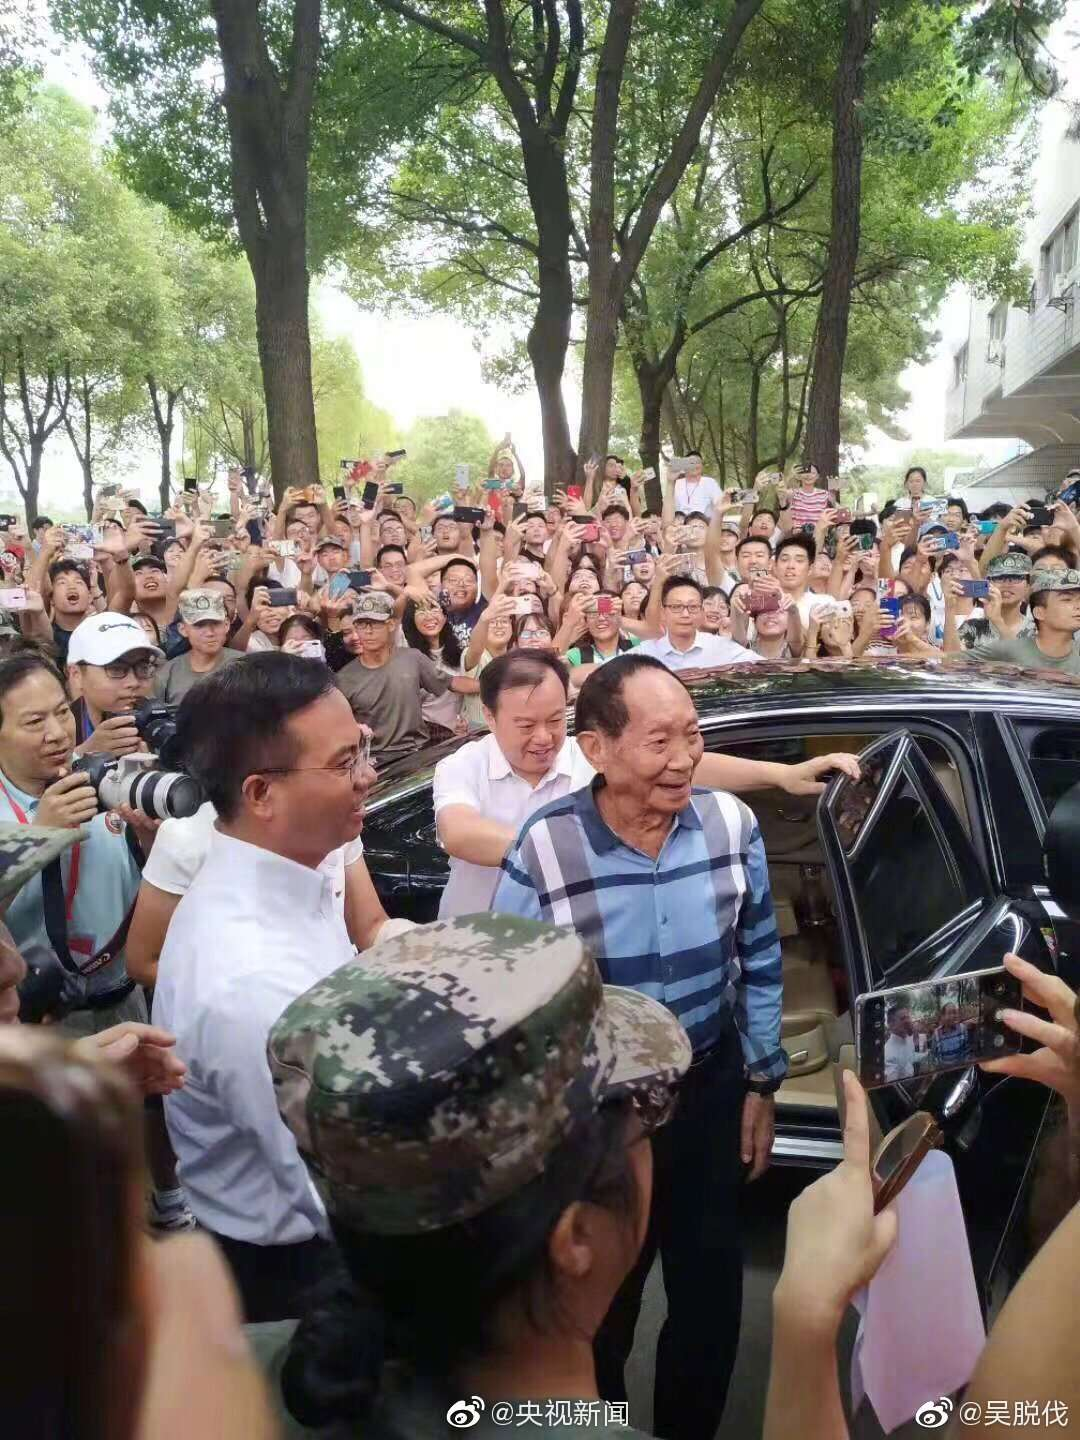 'Hybrid rice father' attends college freshmen opening